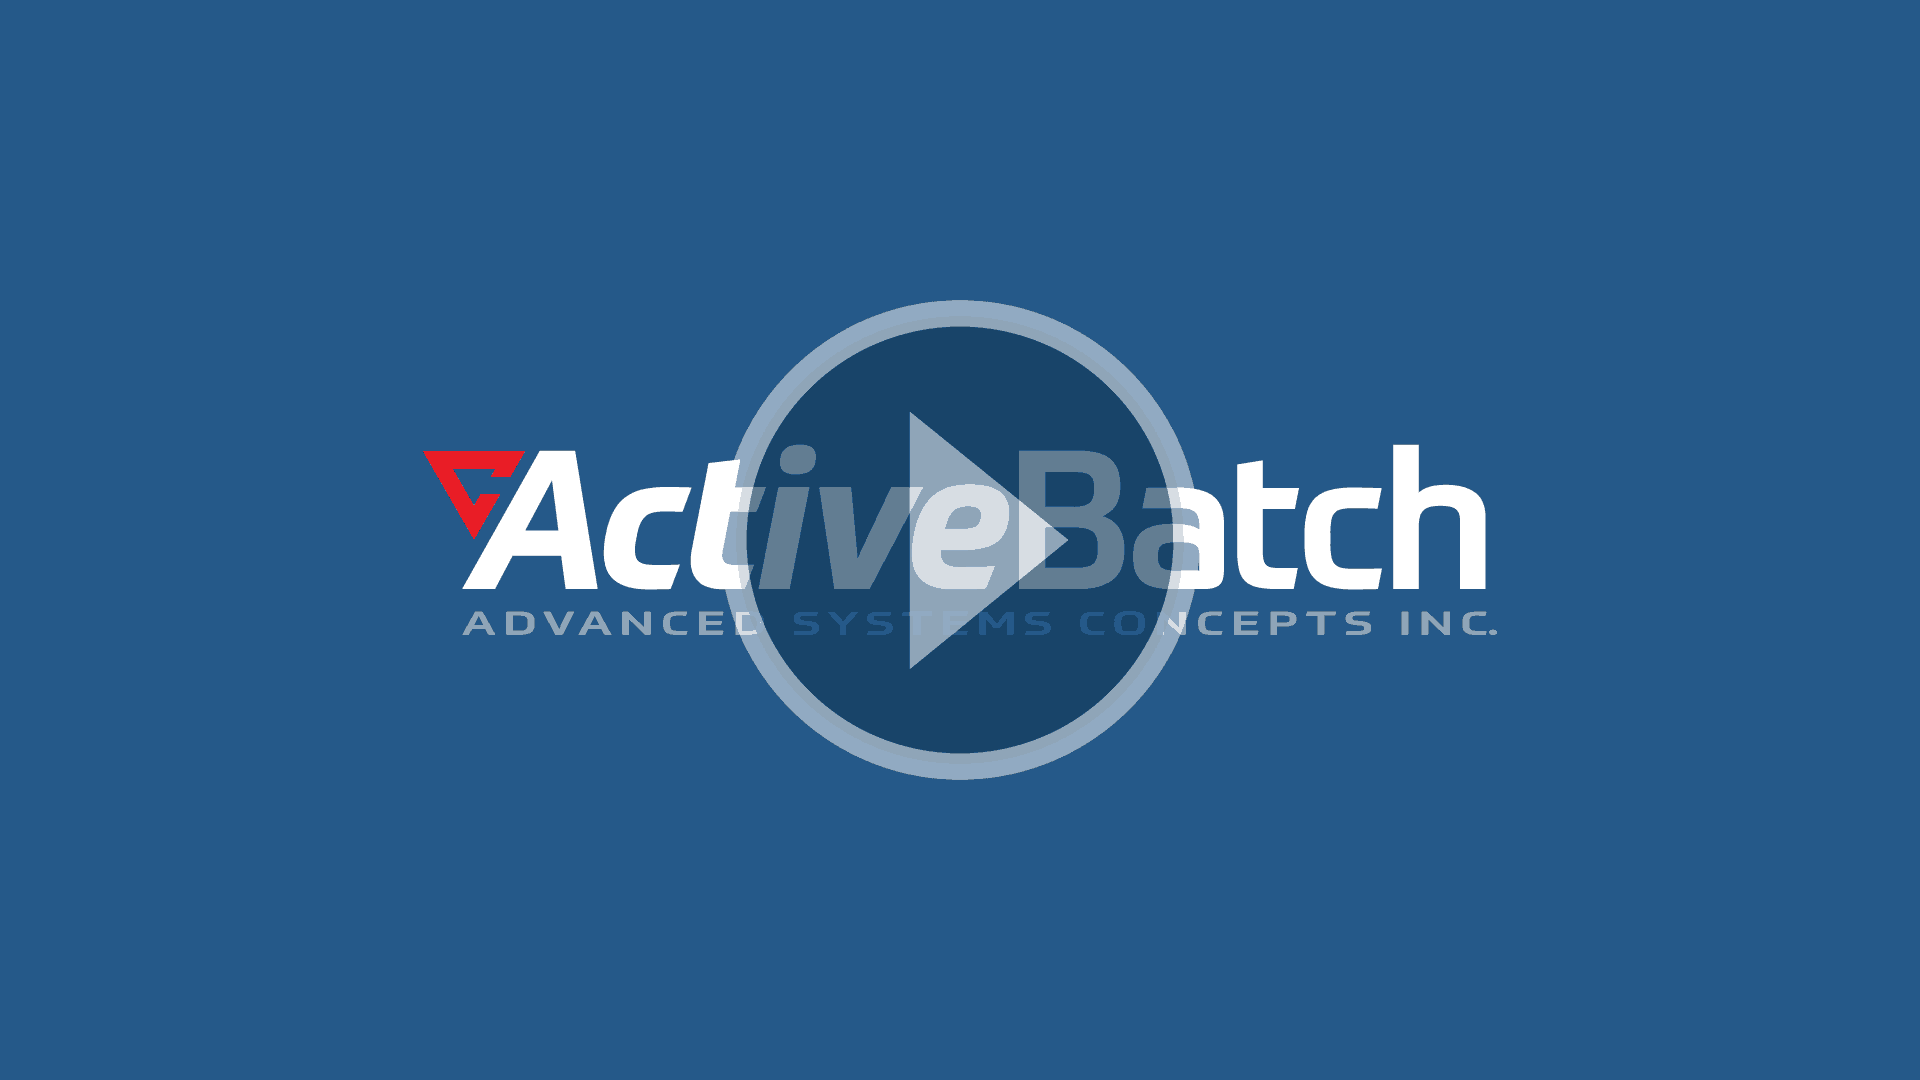 ActiveBatch Overview Video